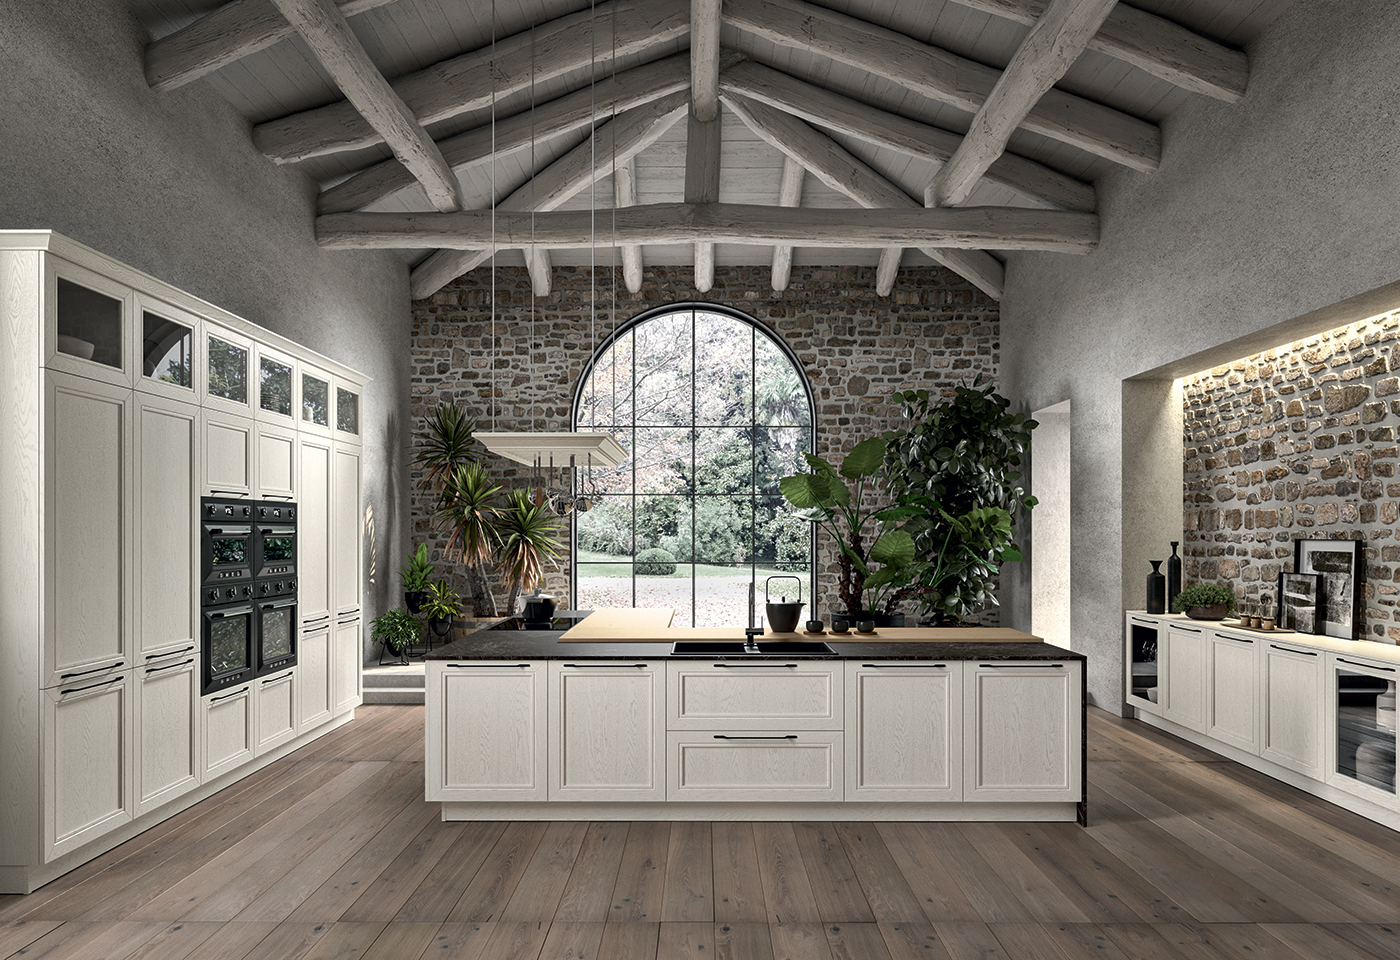 A traditional kitchen with classic lines - Opera - Arredo3